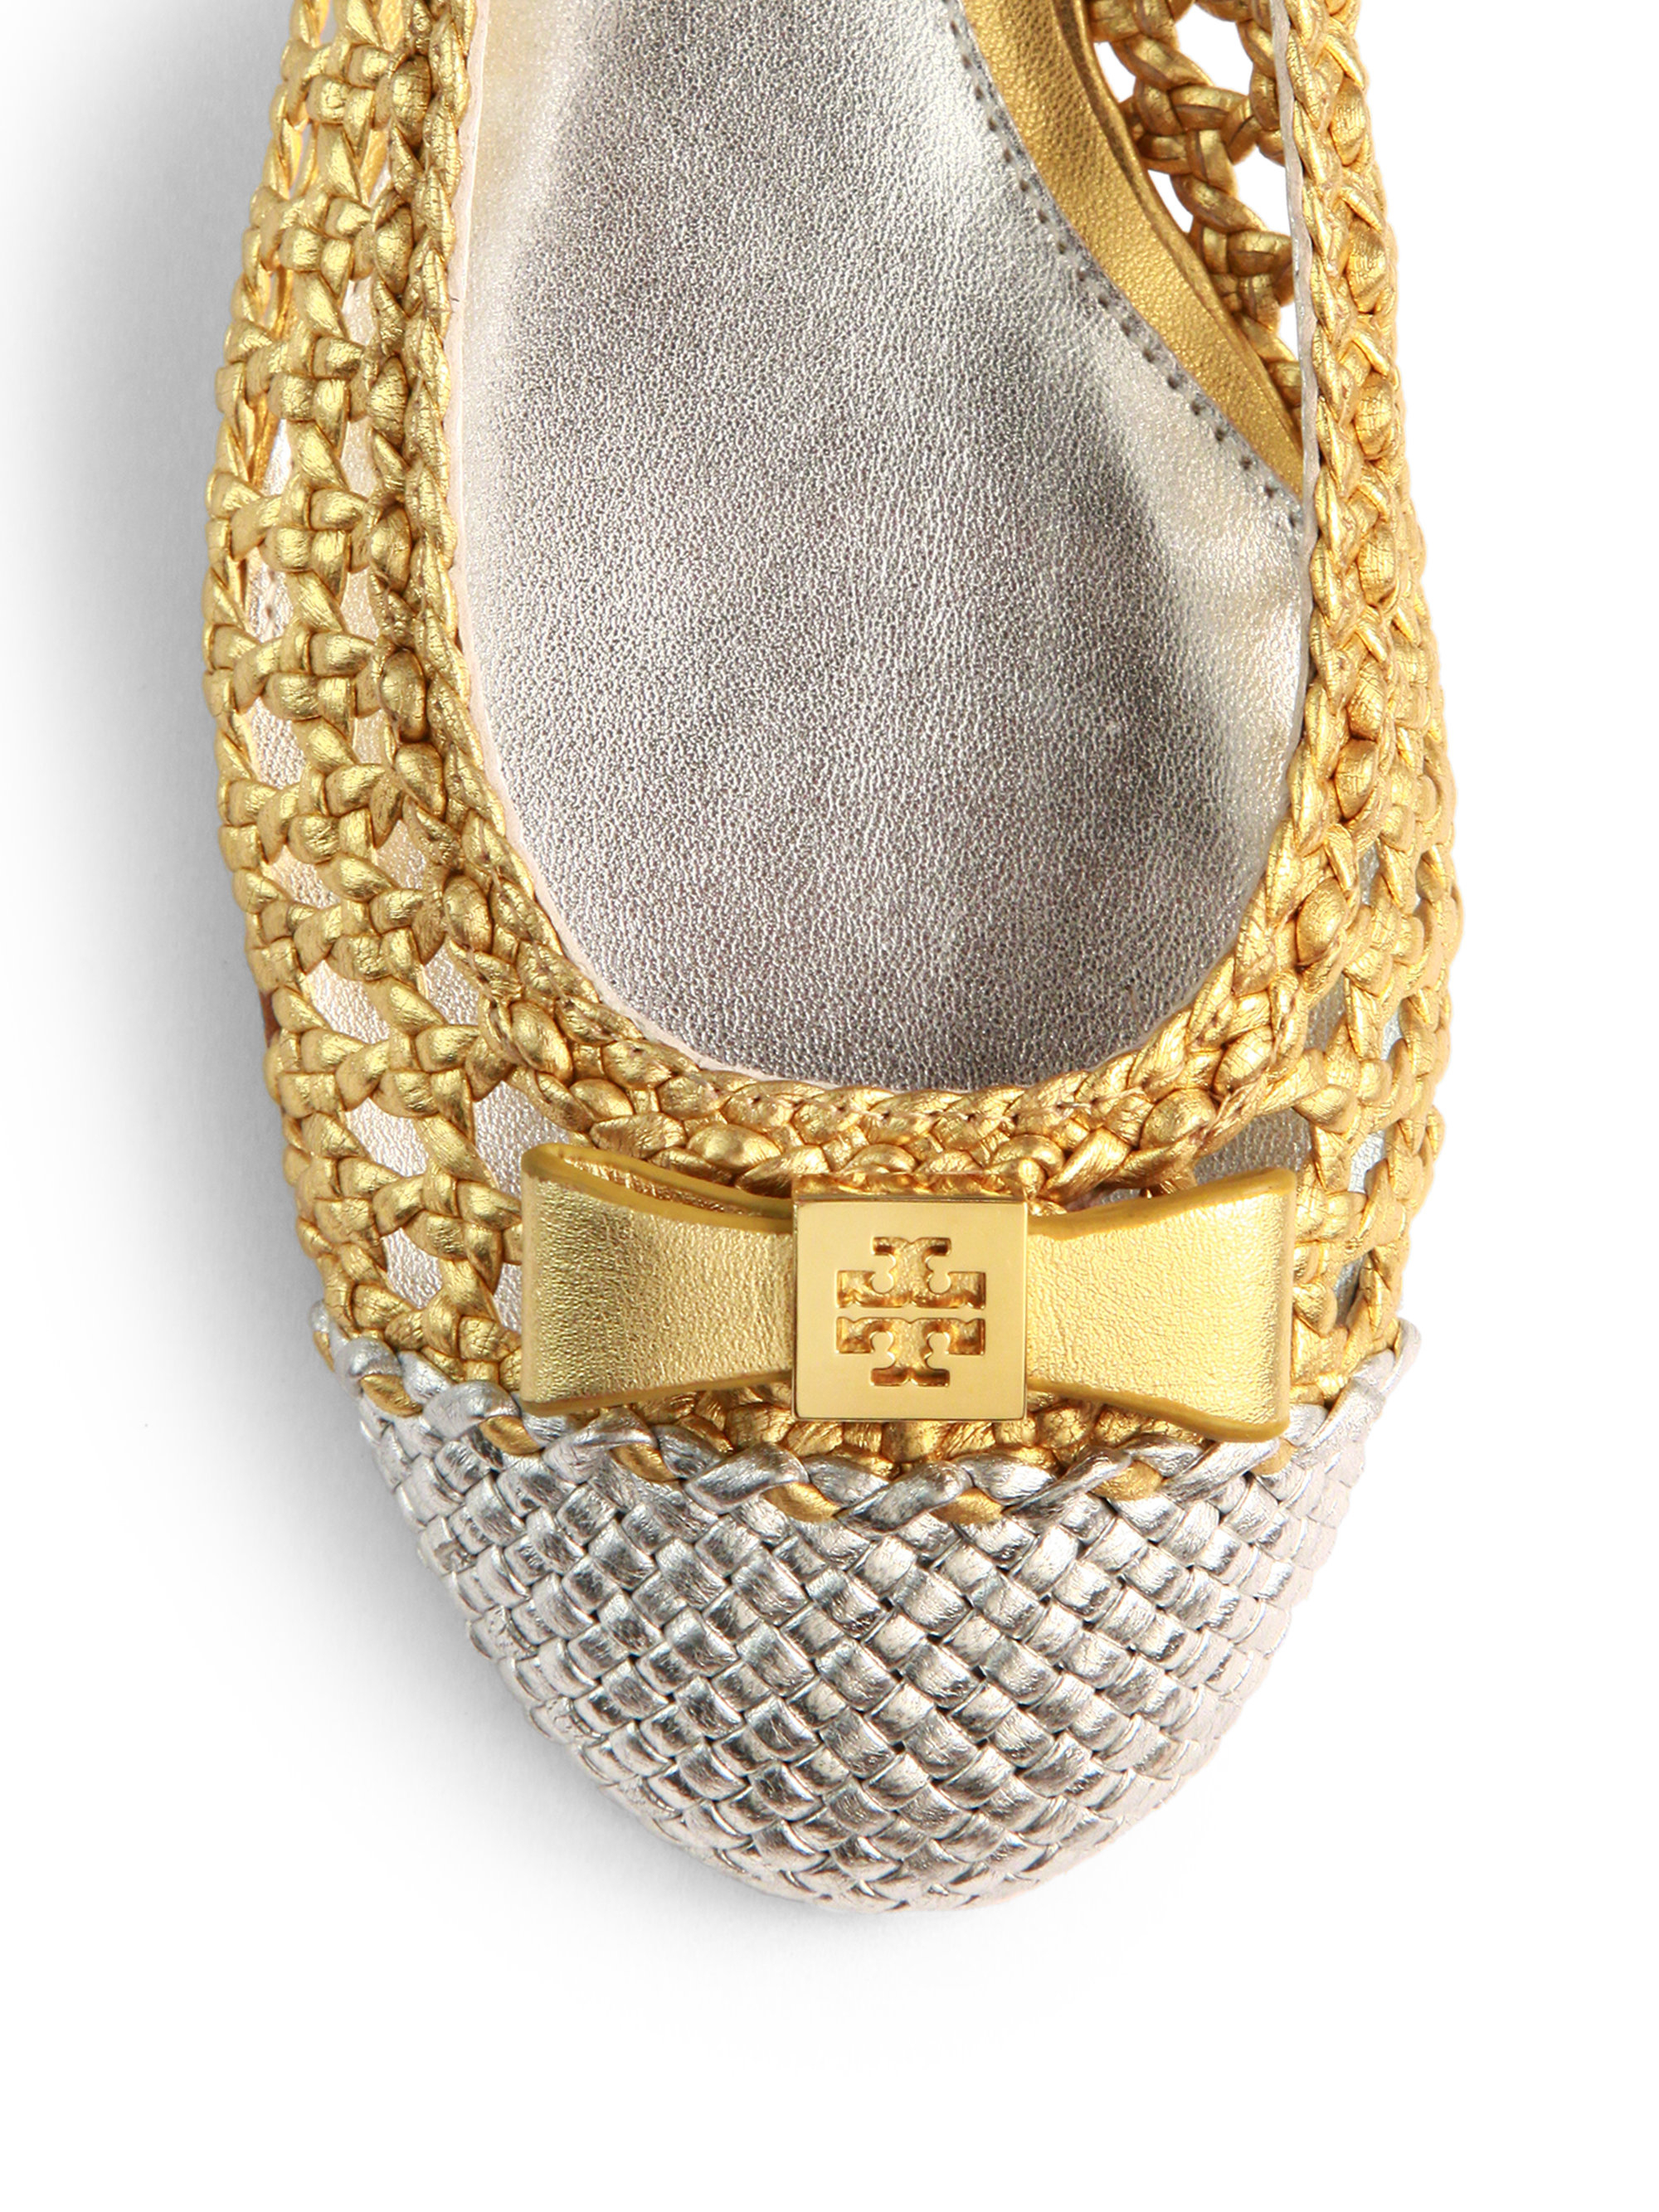 Lyst - Tory Burch Carlyle Woven Metallic Leather Ballet ...